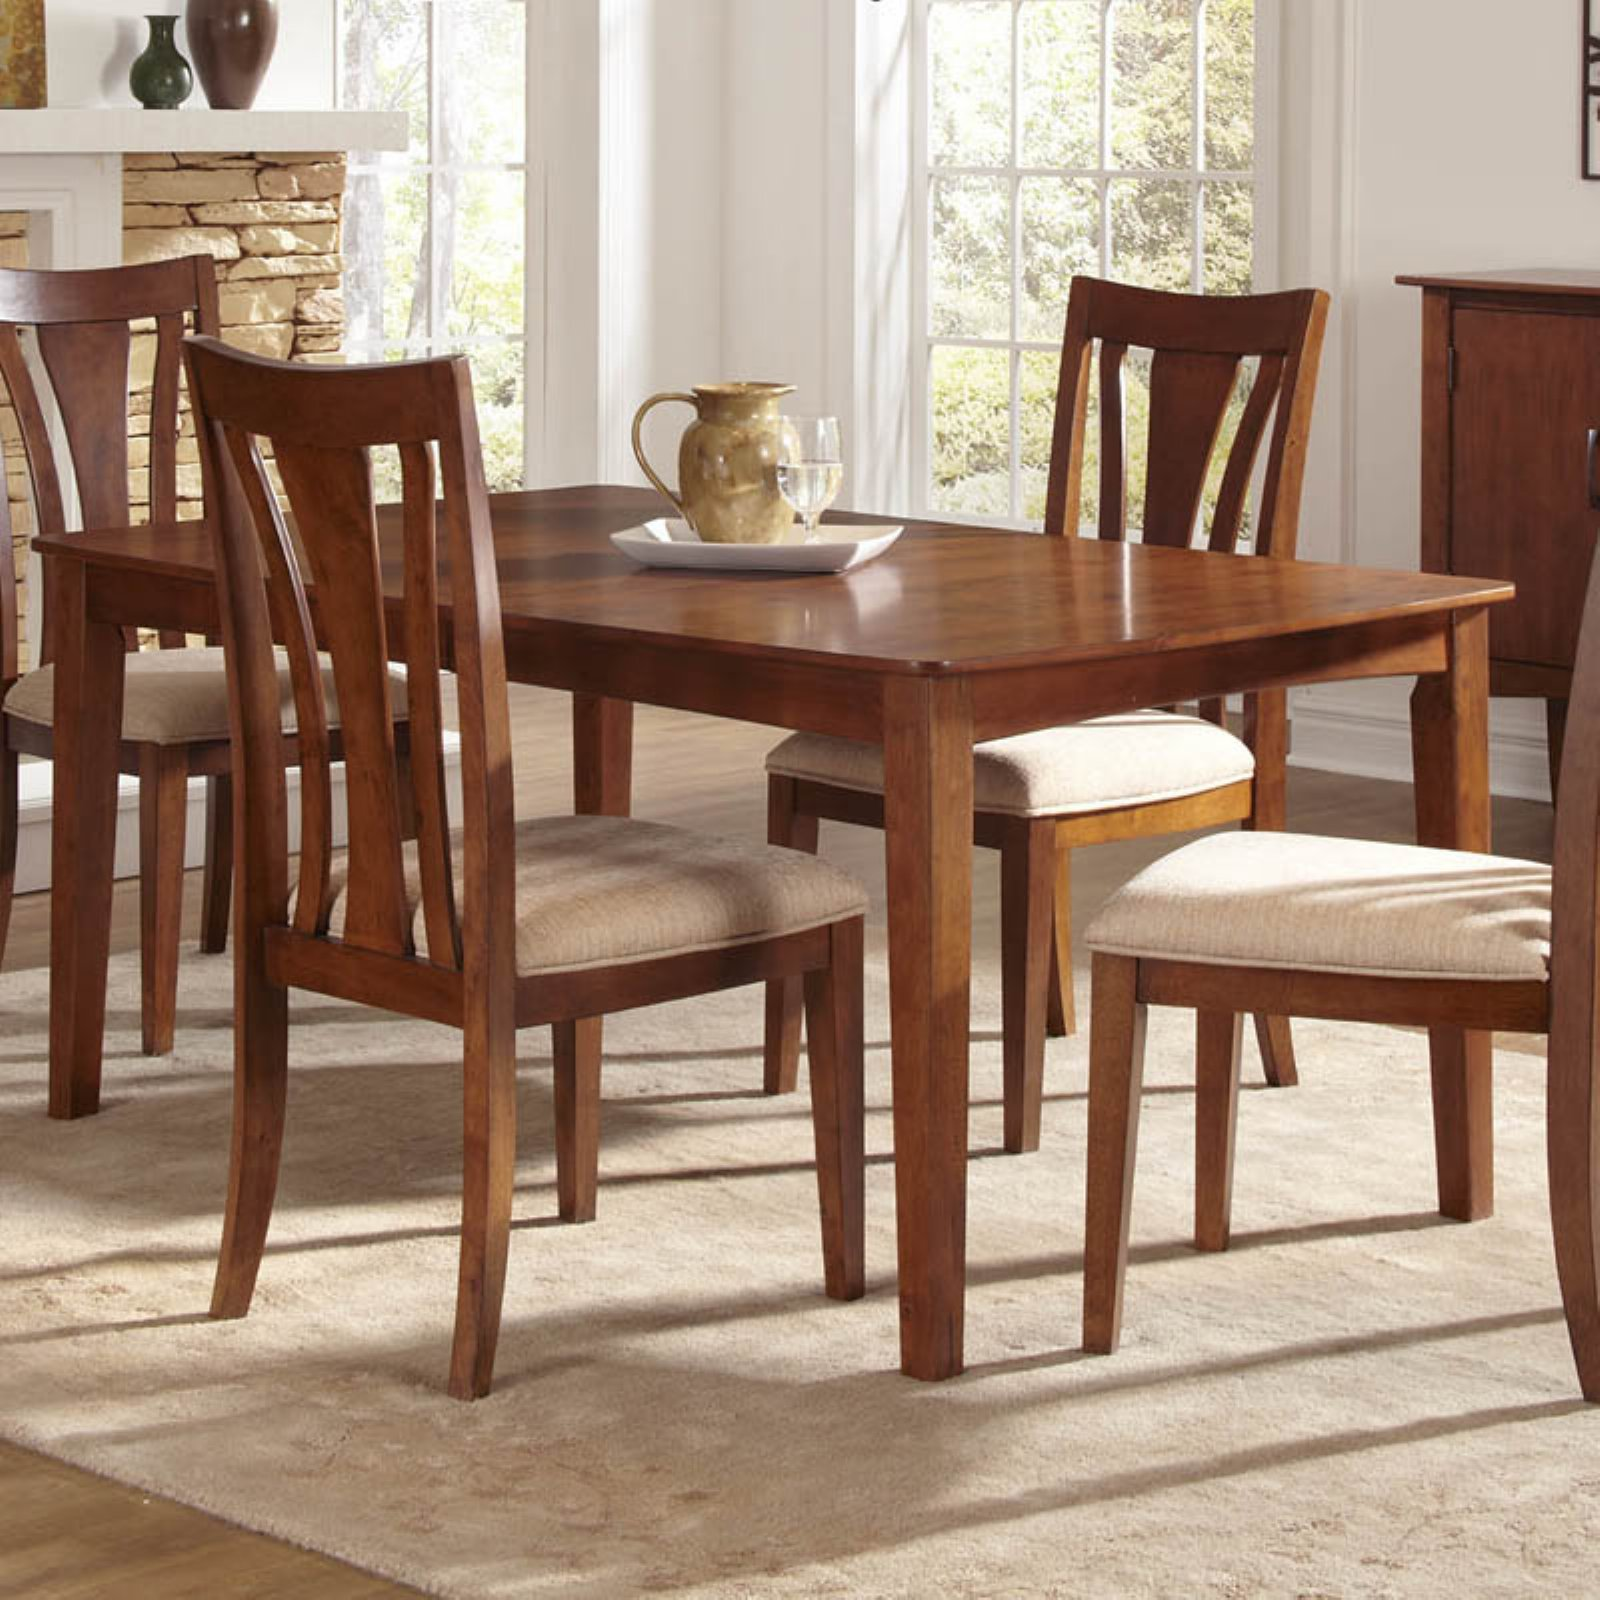 A-America Grant Park Rectangular Leg Dining Table